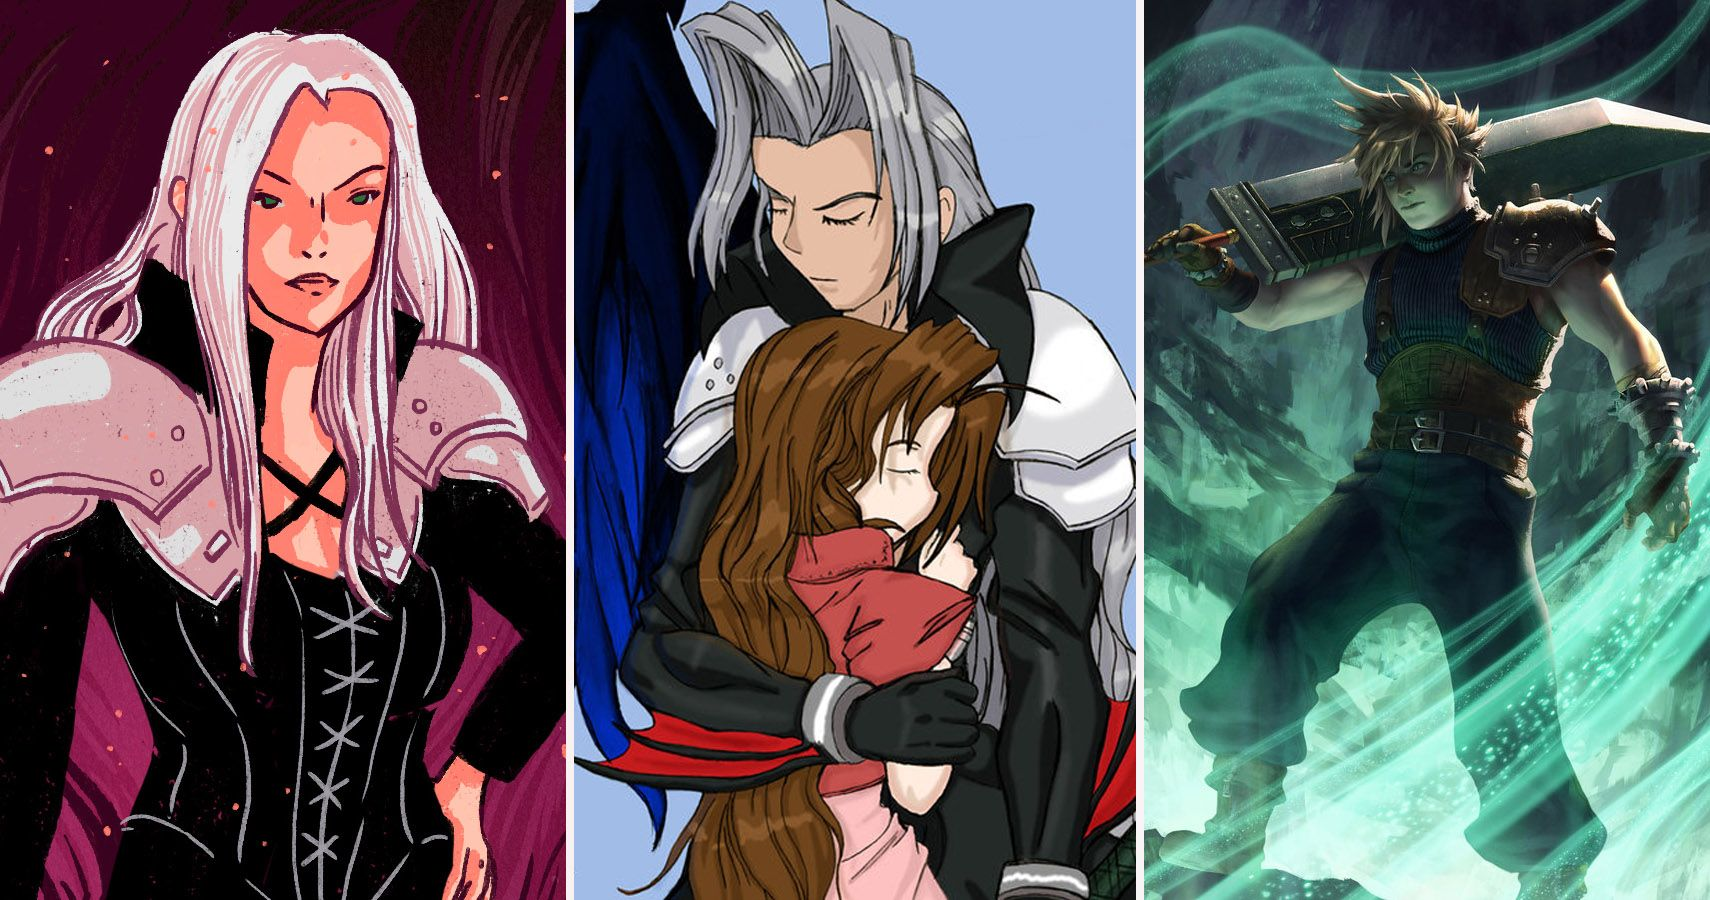 20 Amazing Things Deleted From Final Fantasy 7 (That Would Have